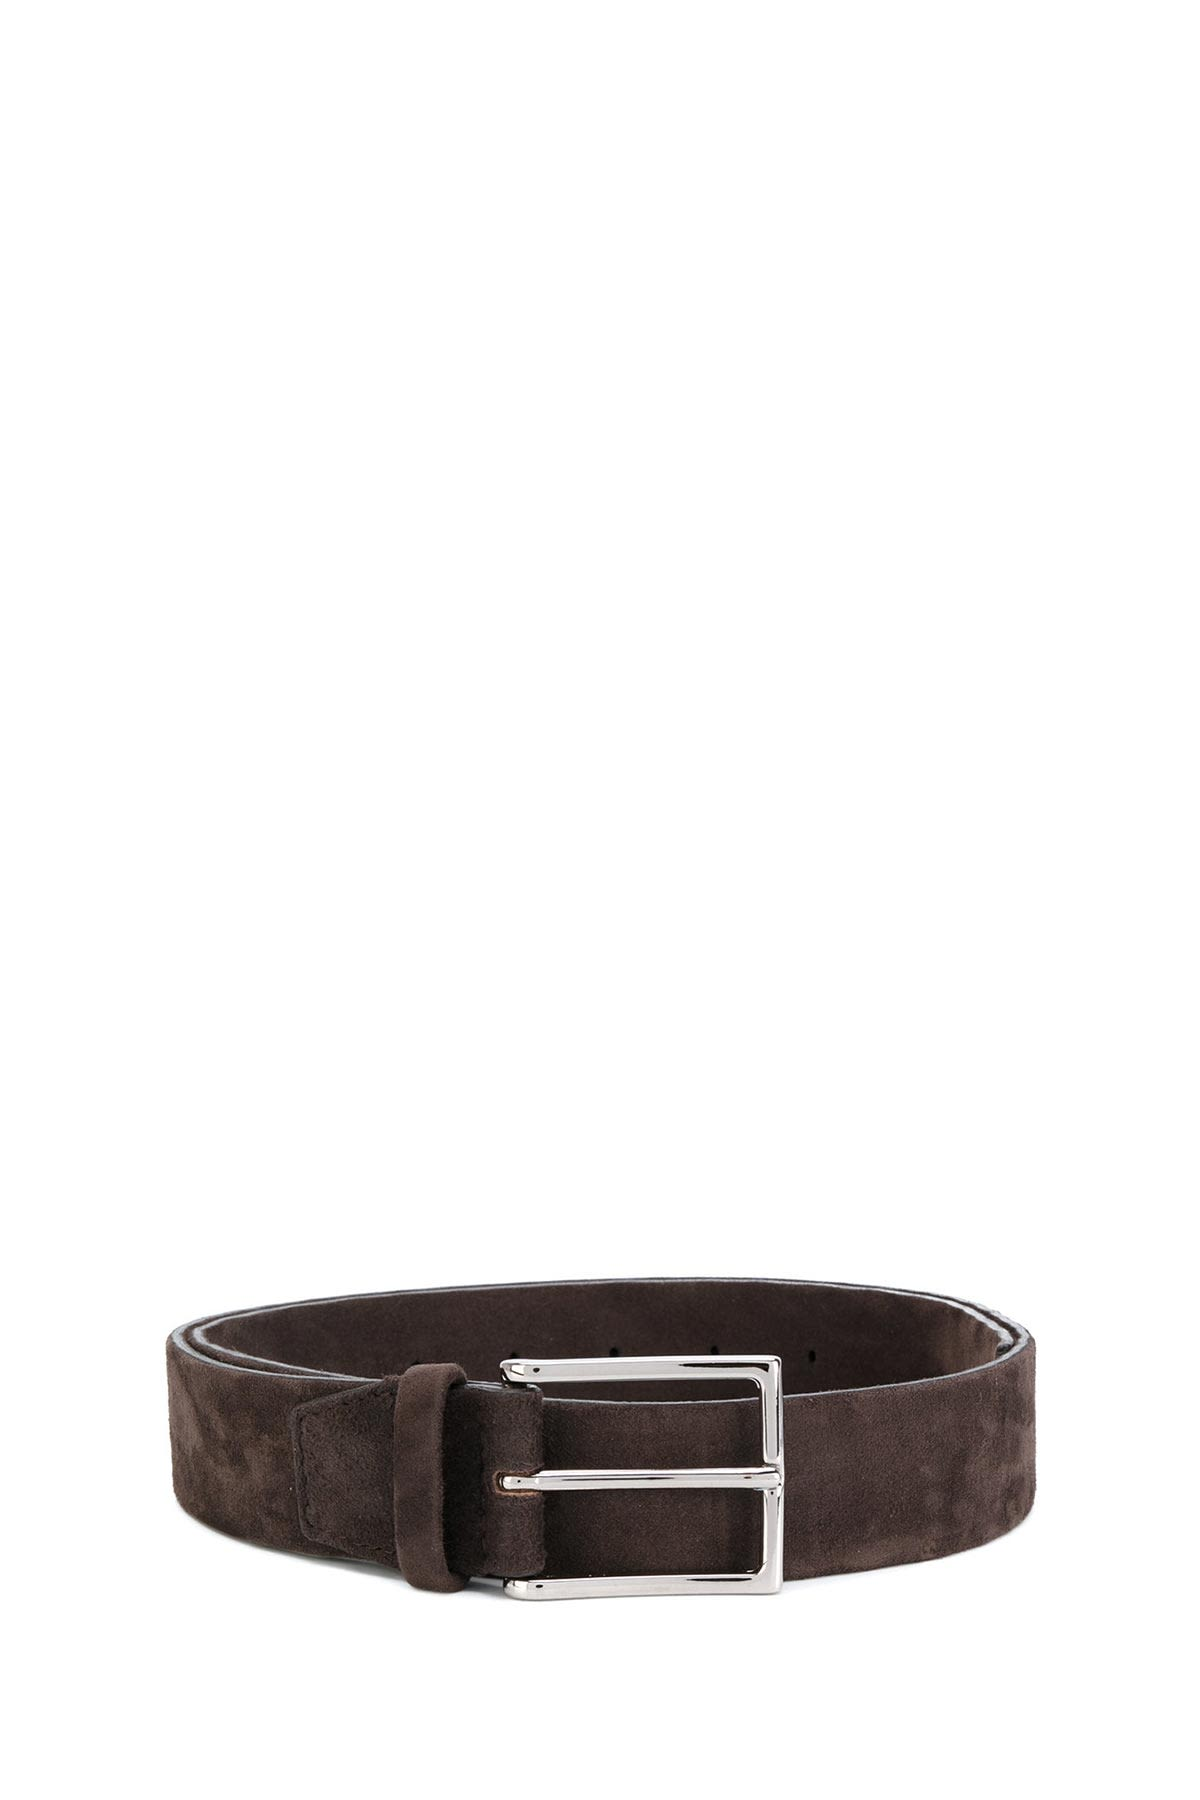 Orciani Brown Suede Belt